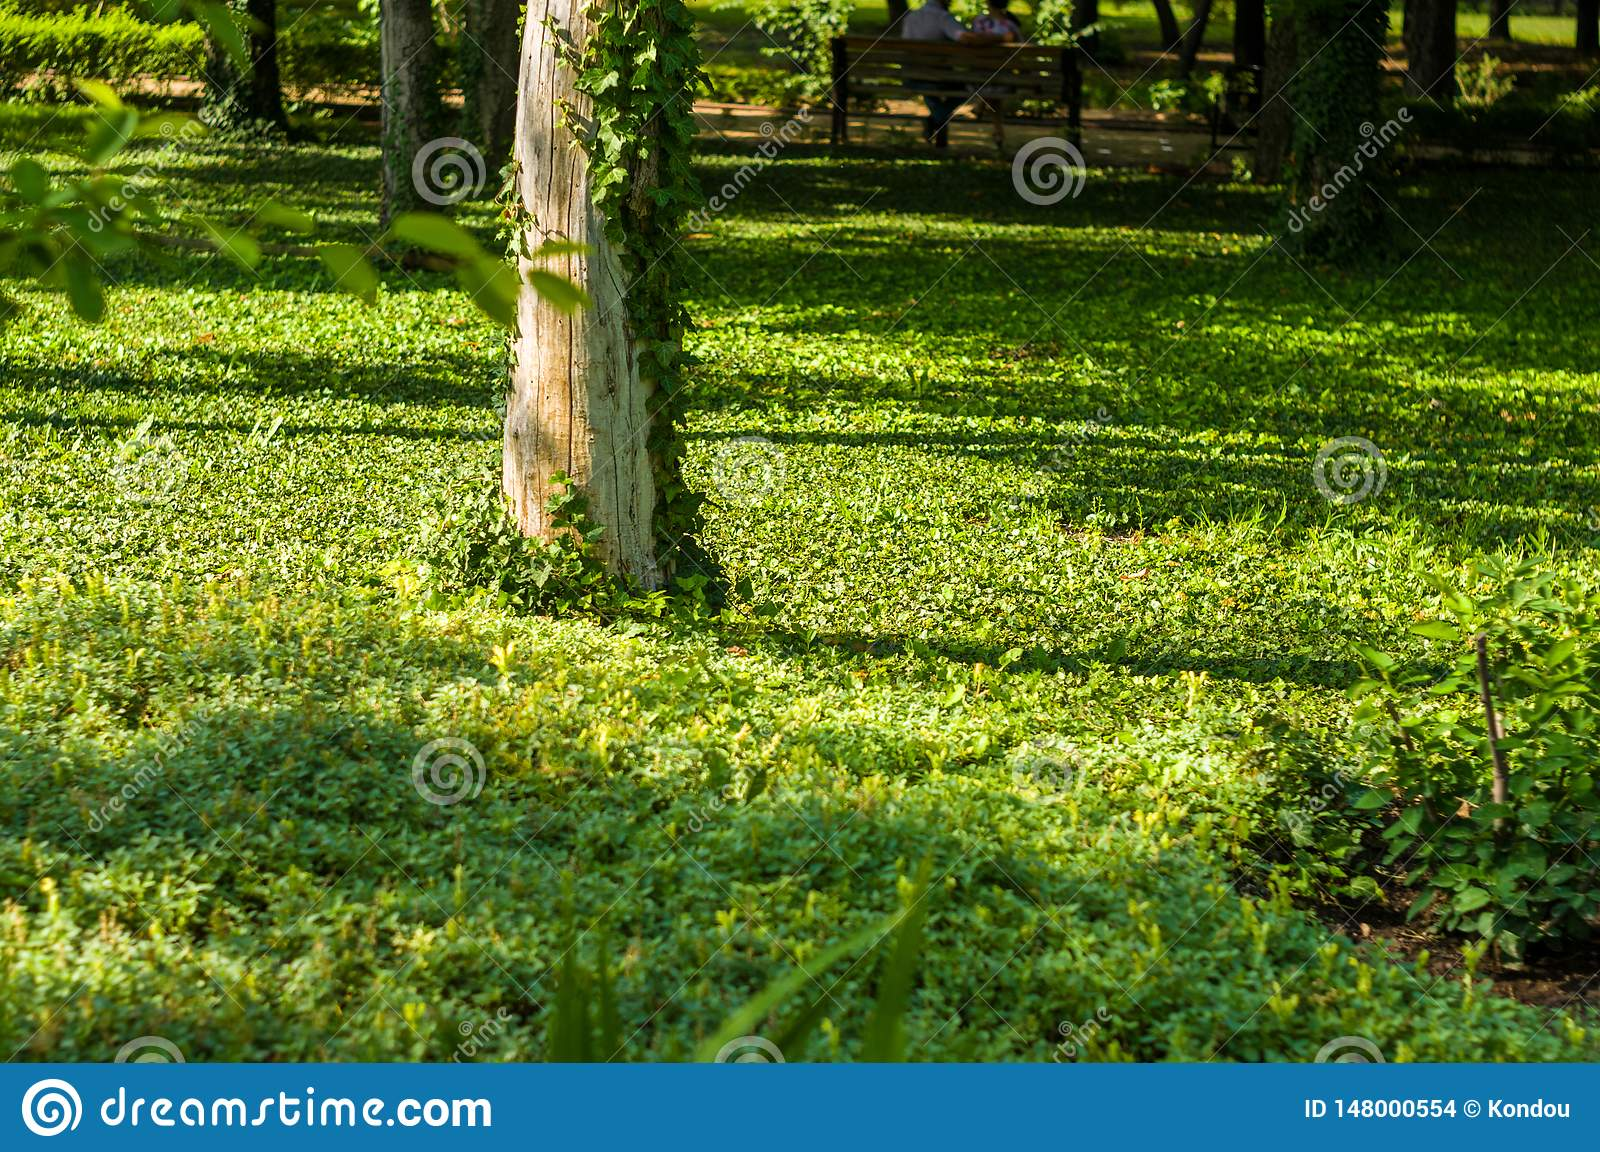 early summer landscape, old Park, trees, bushes, green grass, bright green leaves